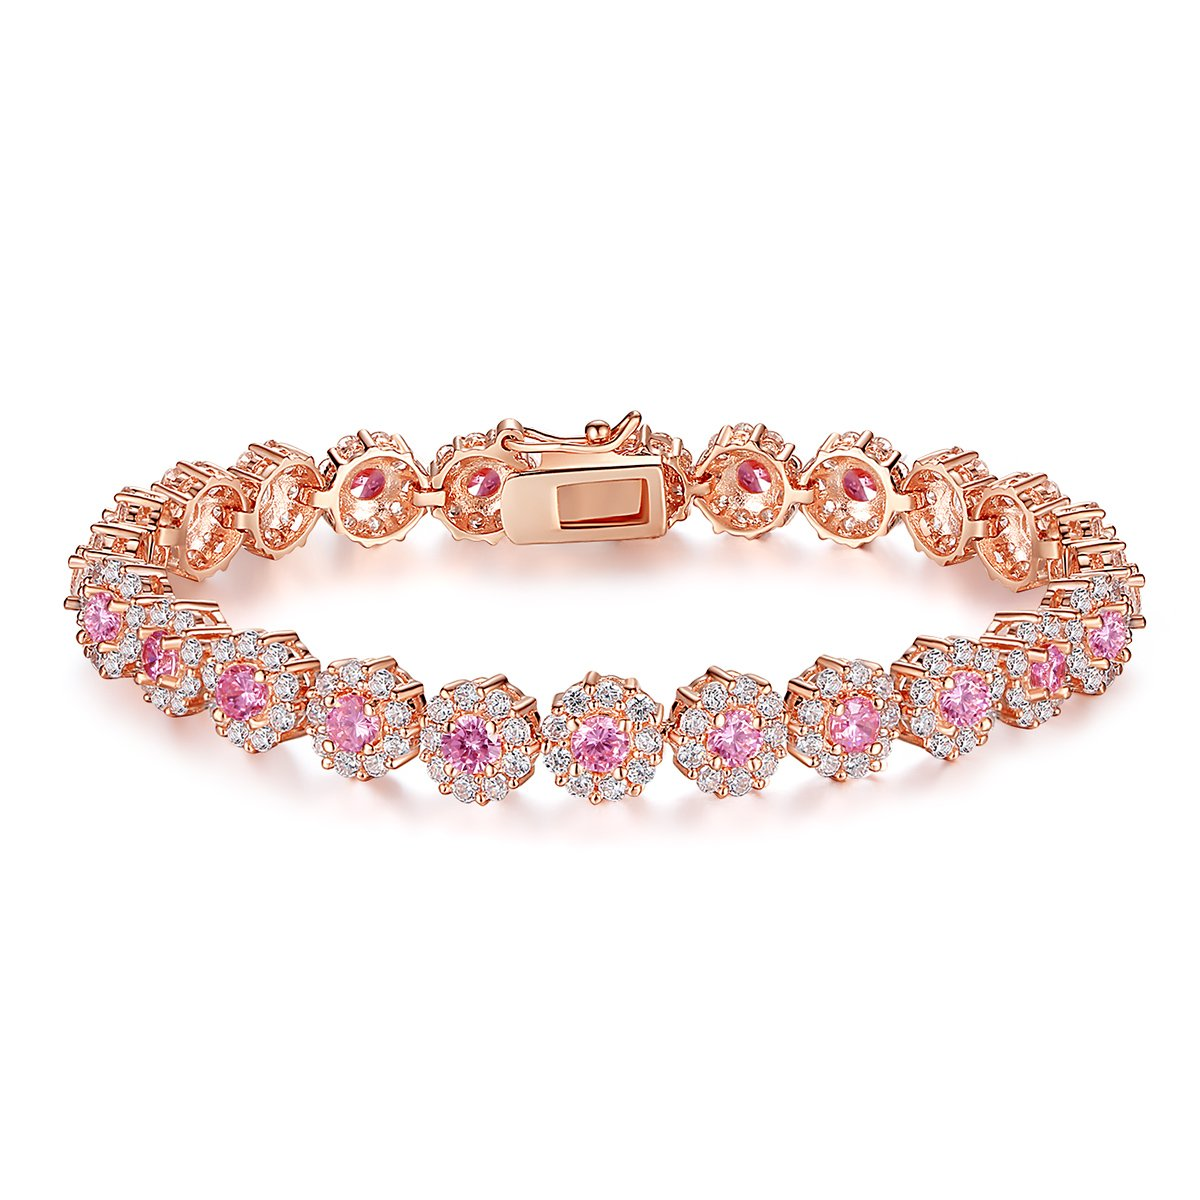 BAMOER Classic Luxury Rose Gold Plated Bracelet with Sparkling Cubic Zirconia Stones for Women Girls for Her JIB084-17+BZ0013